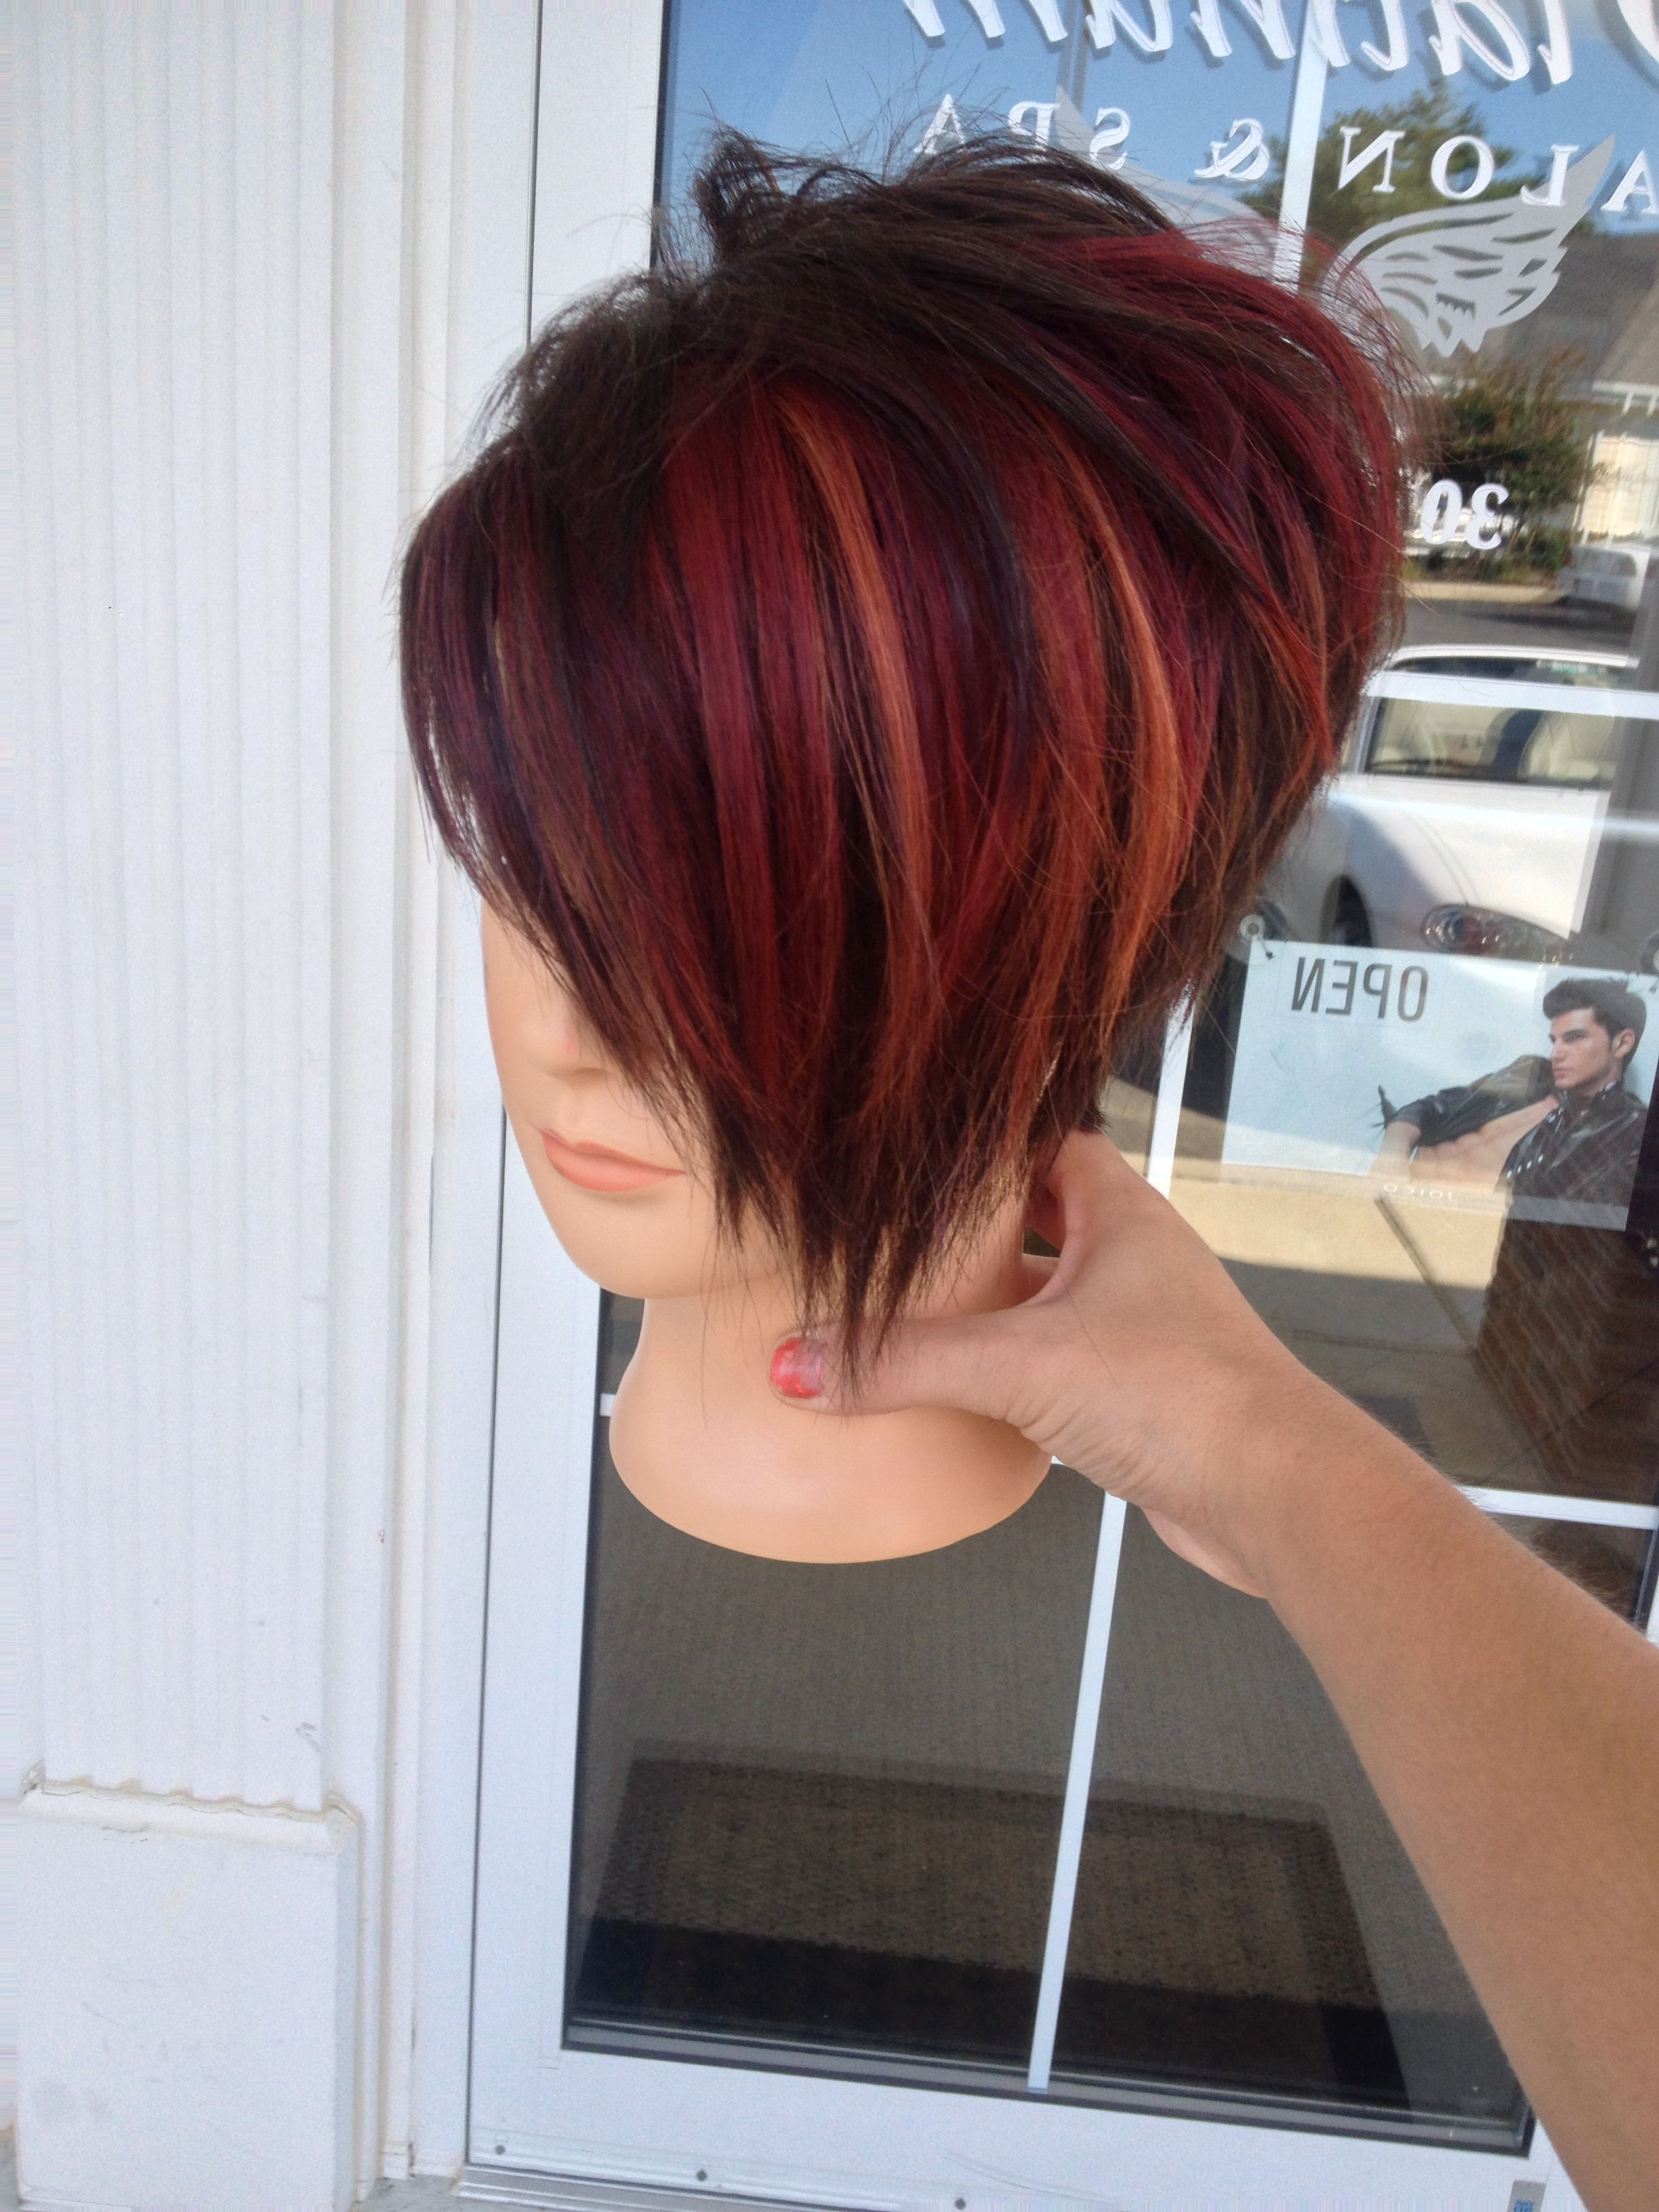 14 Cool Funky Hairstyles In 2018 | Hair | Pinterest | Hair, Hair Within Short Red Haircuts With Wispy Layers (View 2 of 20)